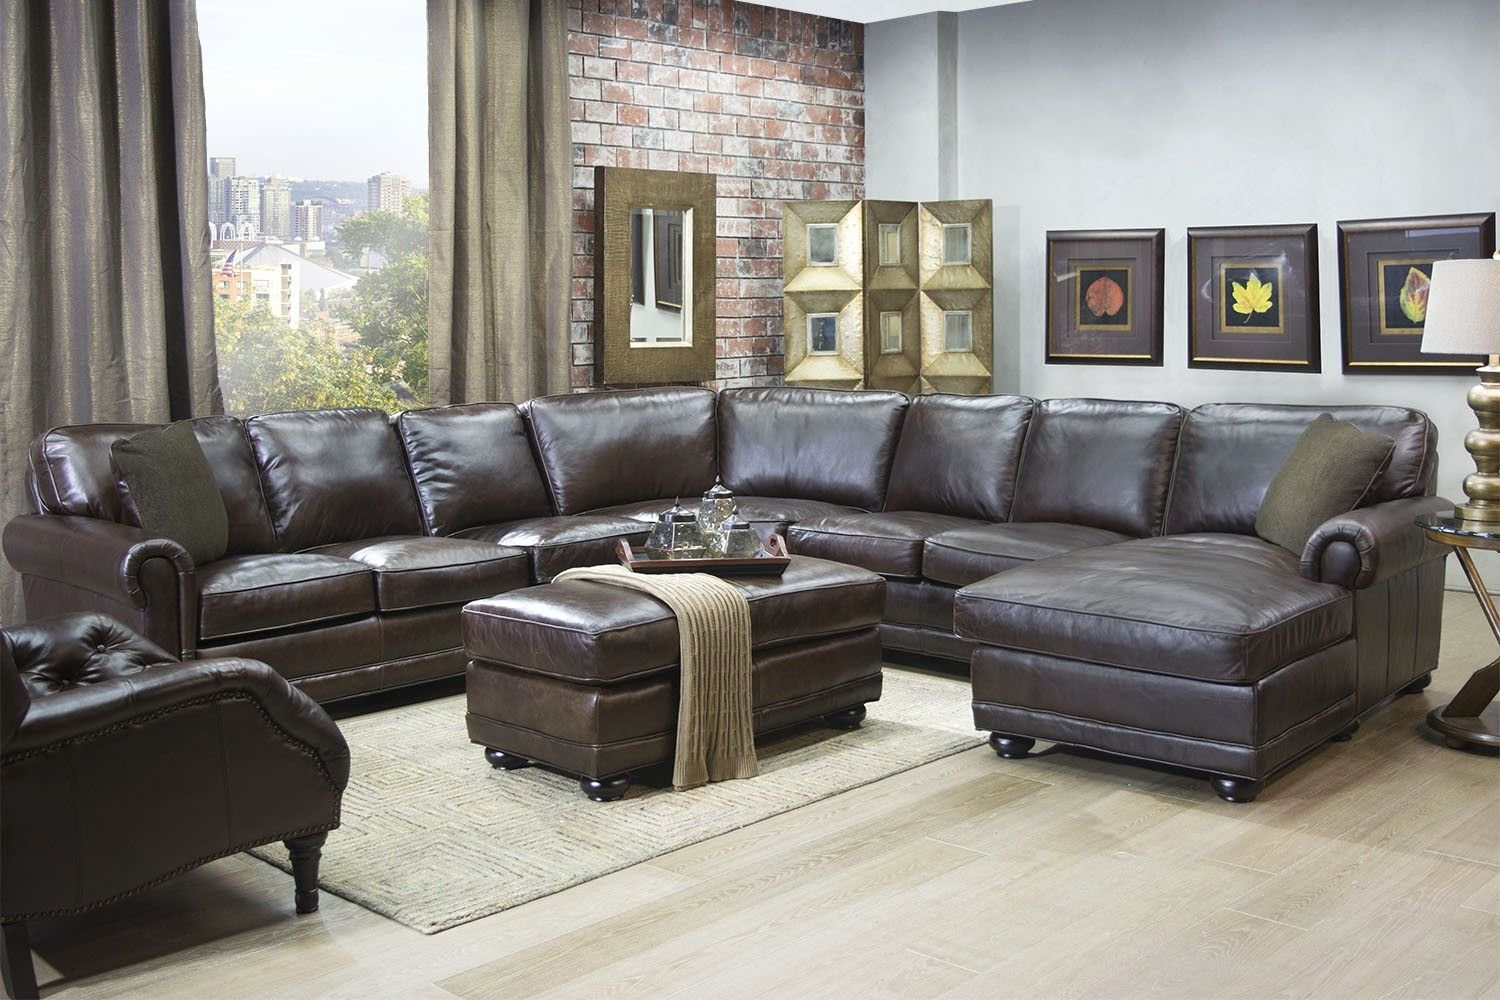 terrific living room sofa sets collection-Fantastic Living Room sofa Sets Ideas